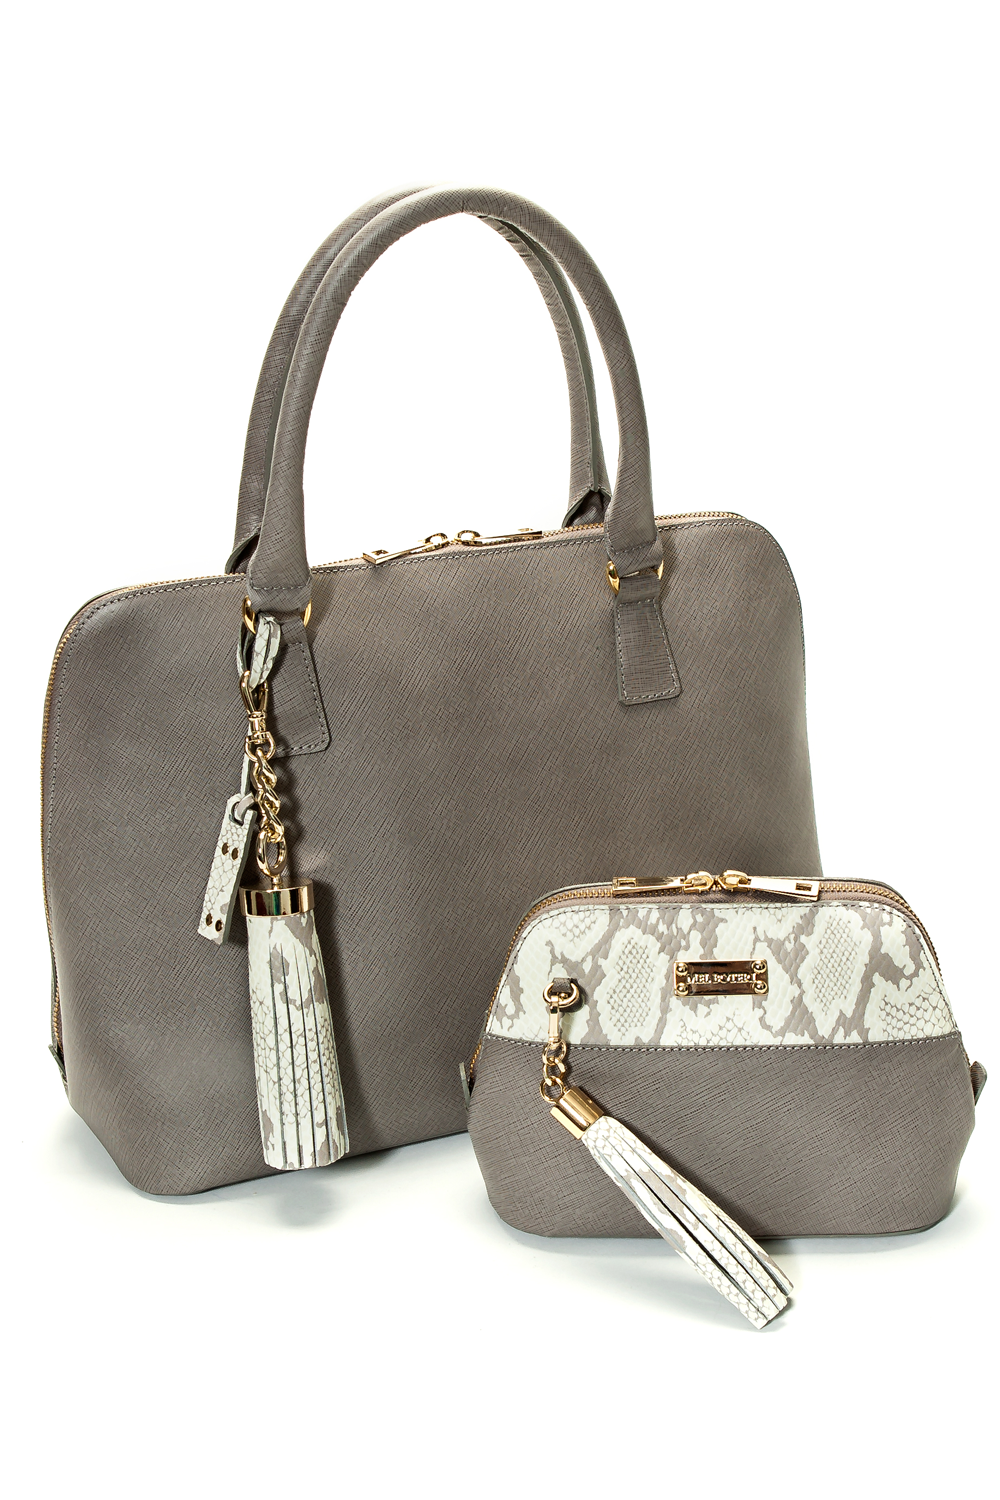 Mel Boteri 'Watson' Tote in Grey Saffiano Leather | With the Watson Mini